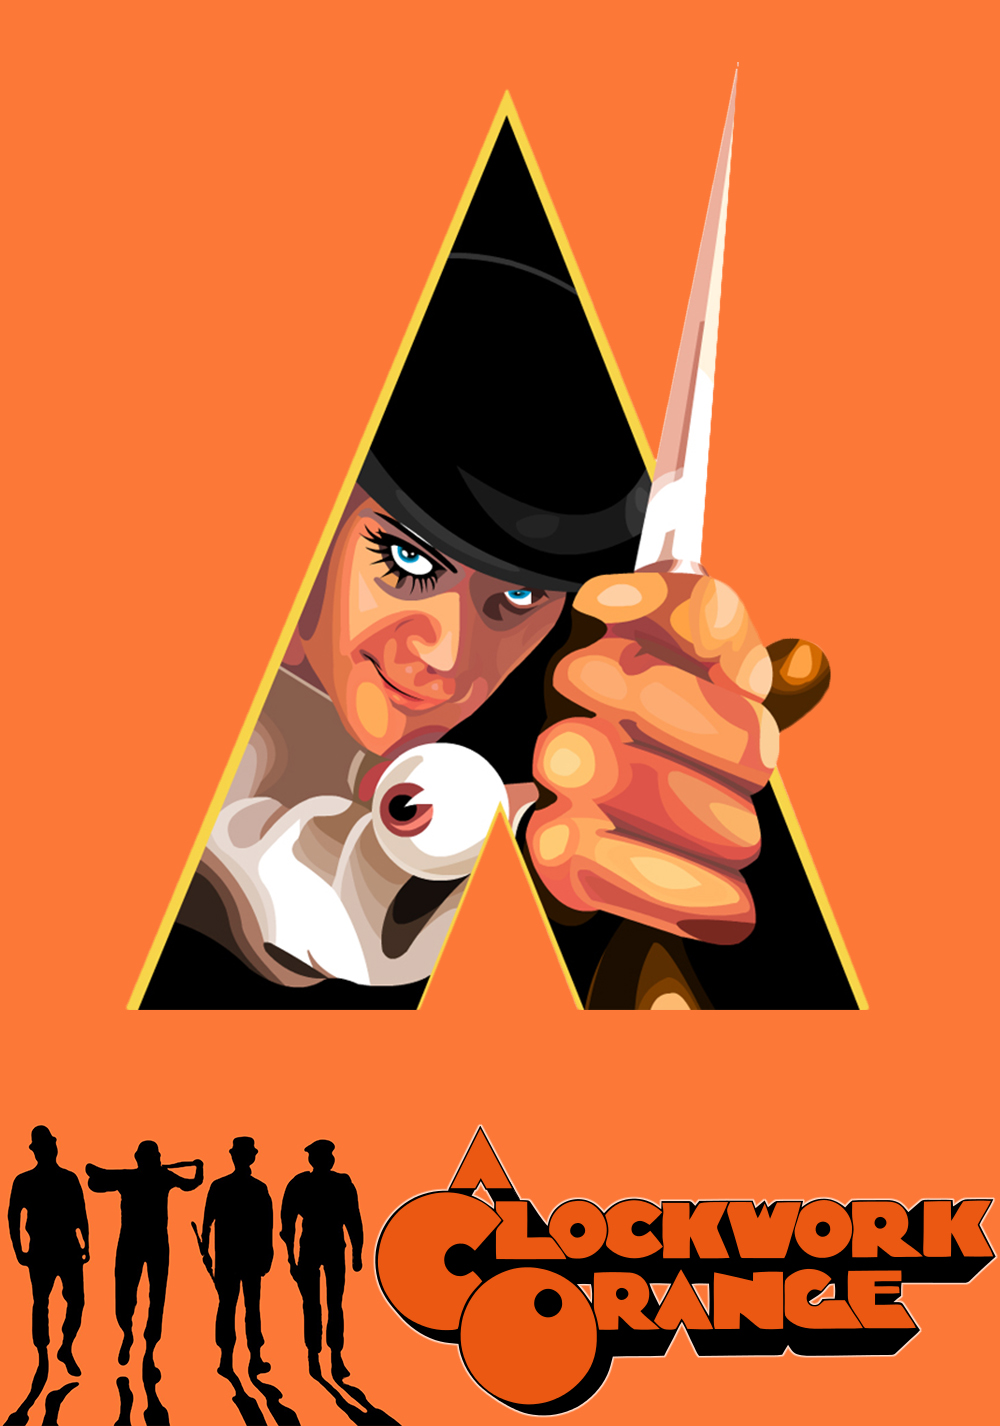 a clockwork orange poster.jpg